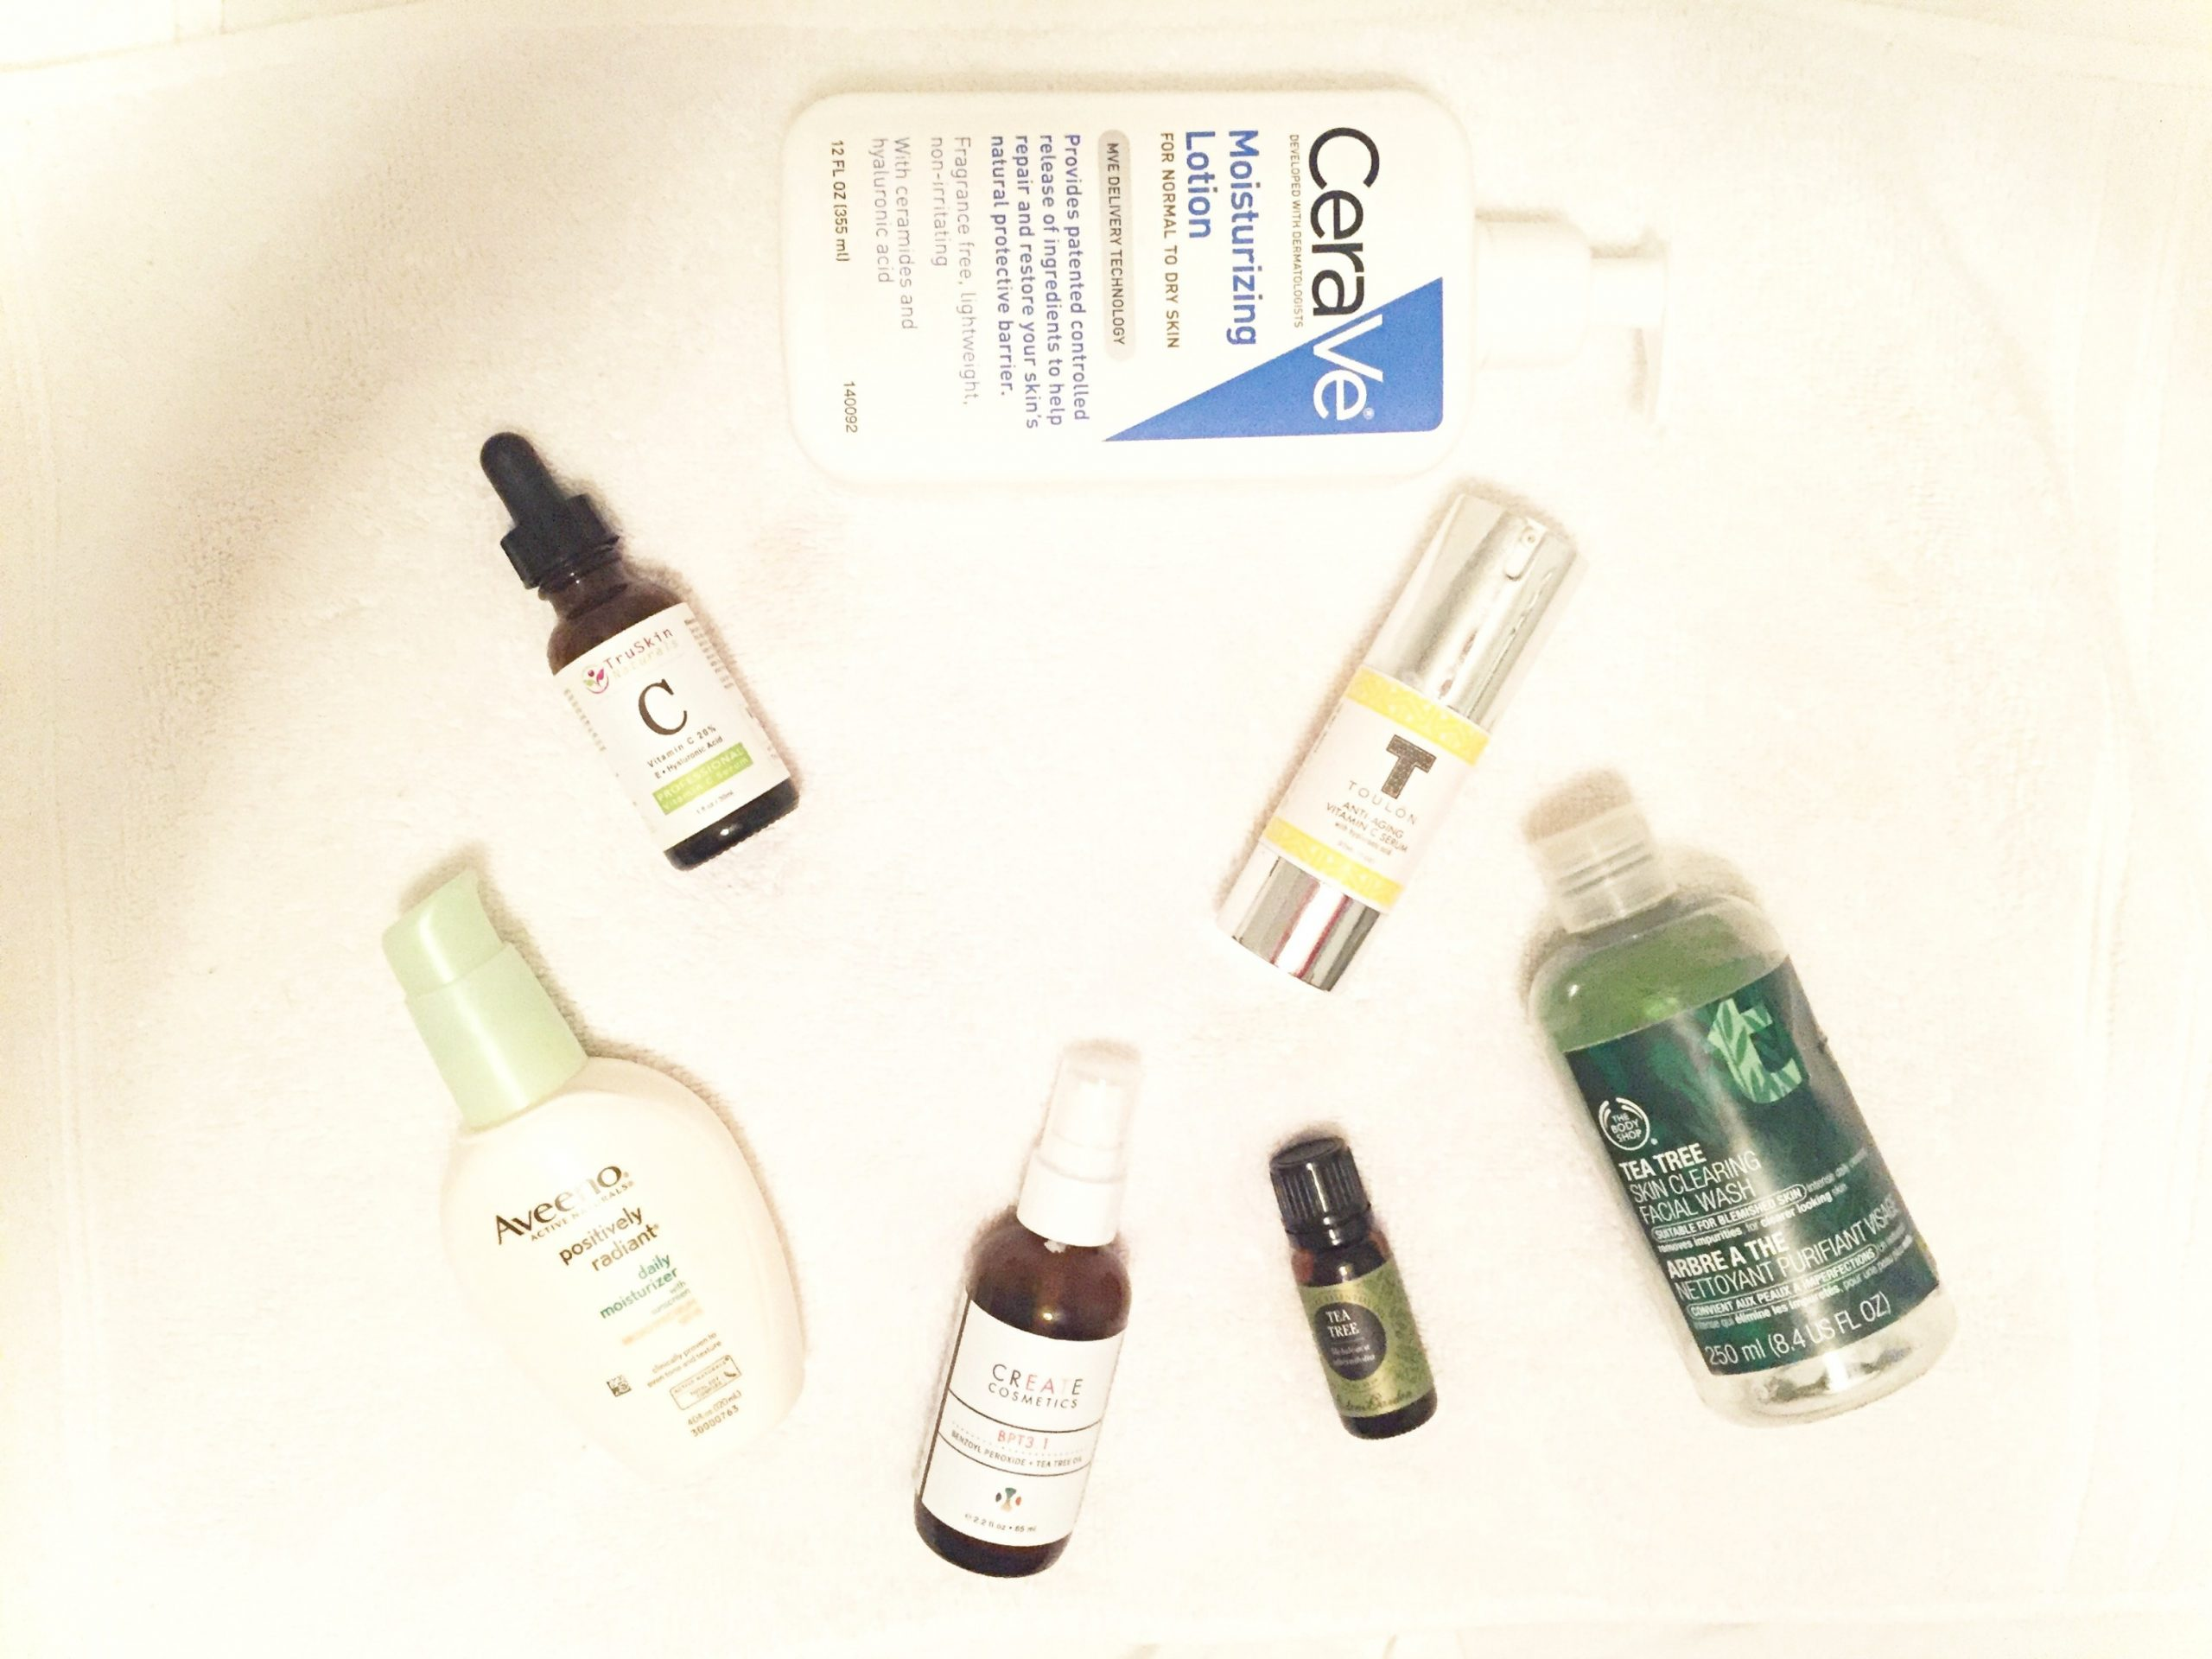 acne-products-that-work-its-simply-lindsay